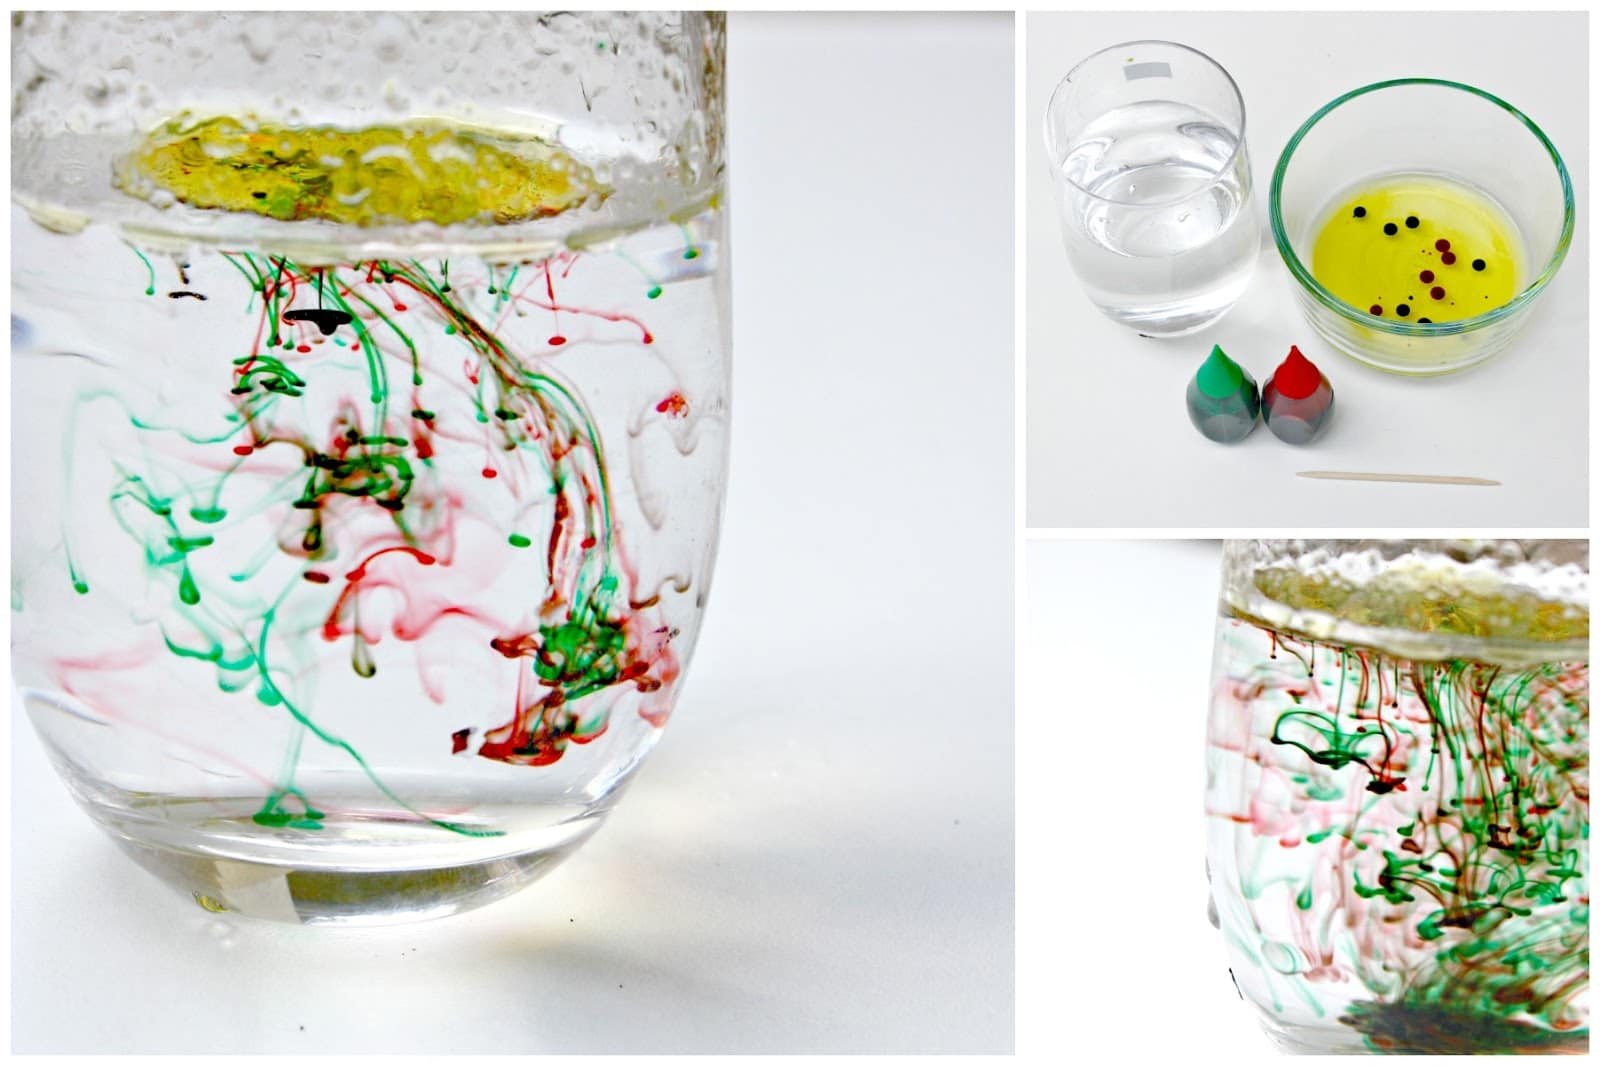 7 Fun And Easy Science Experiments For Christmas